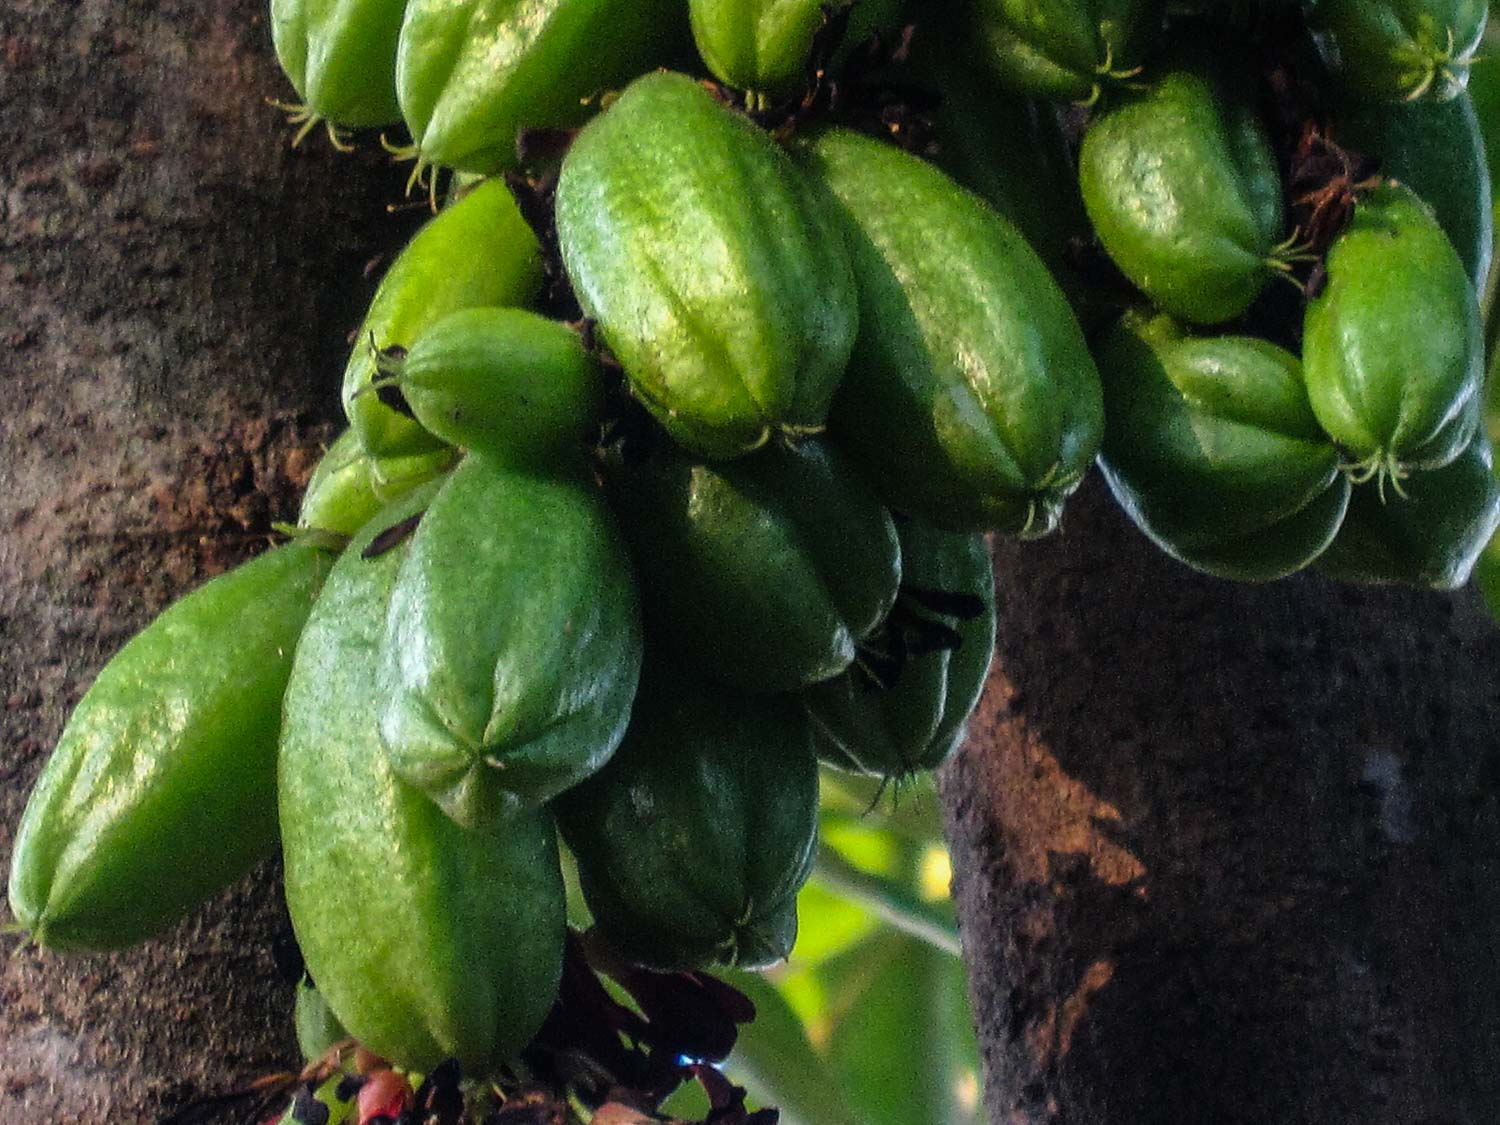 Cluster of Jamaica fruits called blim blim, they look like cucumber on a tree with five sides at the bottom as they are related to star fruit.